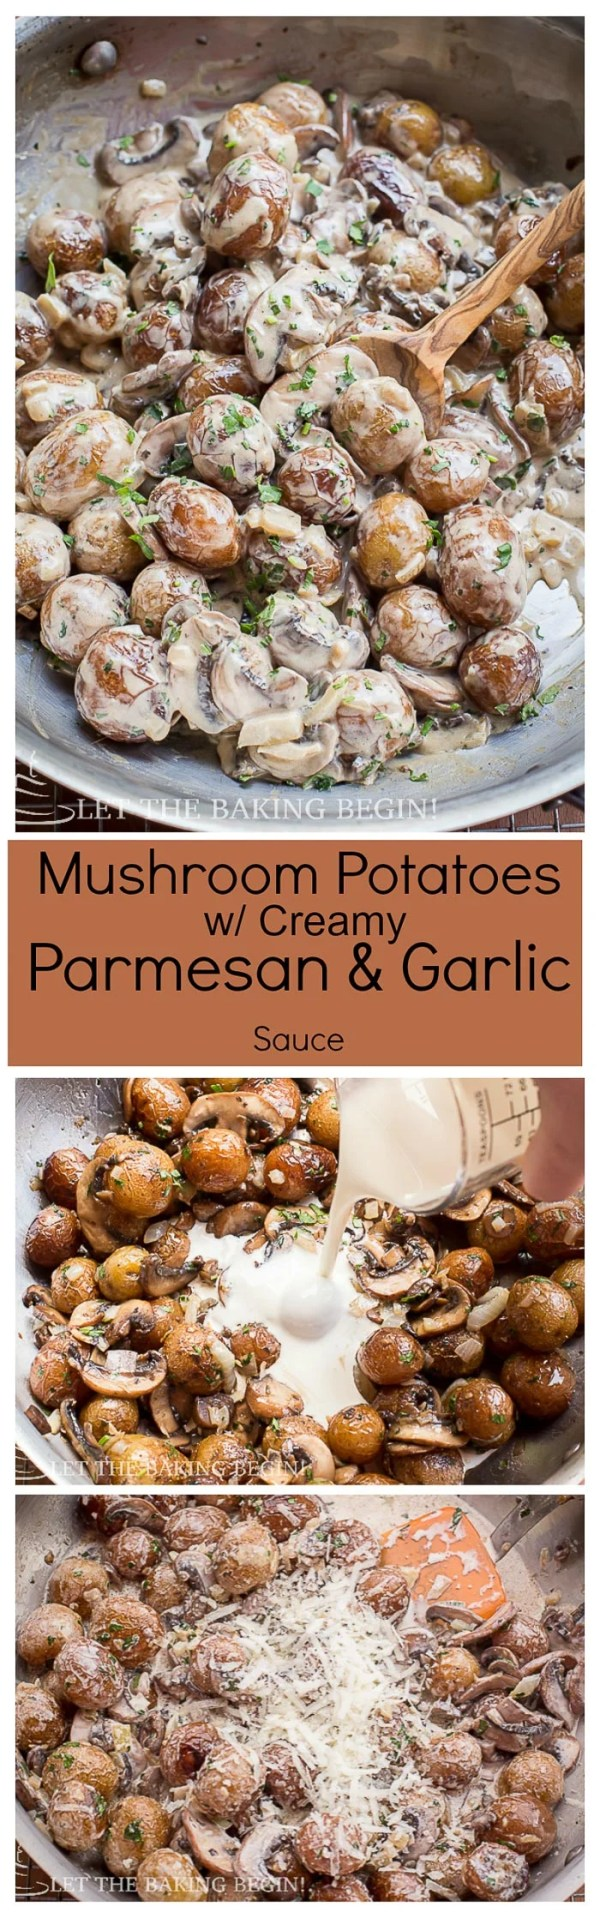 Creamy Mushroom Potatoes with Parmesan - The recipe you need to make for dinner tonight! You'll love these bite-size potatoes, smothered in delicious white Parmesan with garlic sauce!   Let the Baking Begin Blog.com